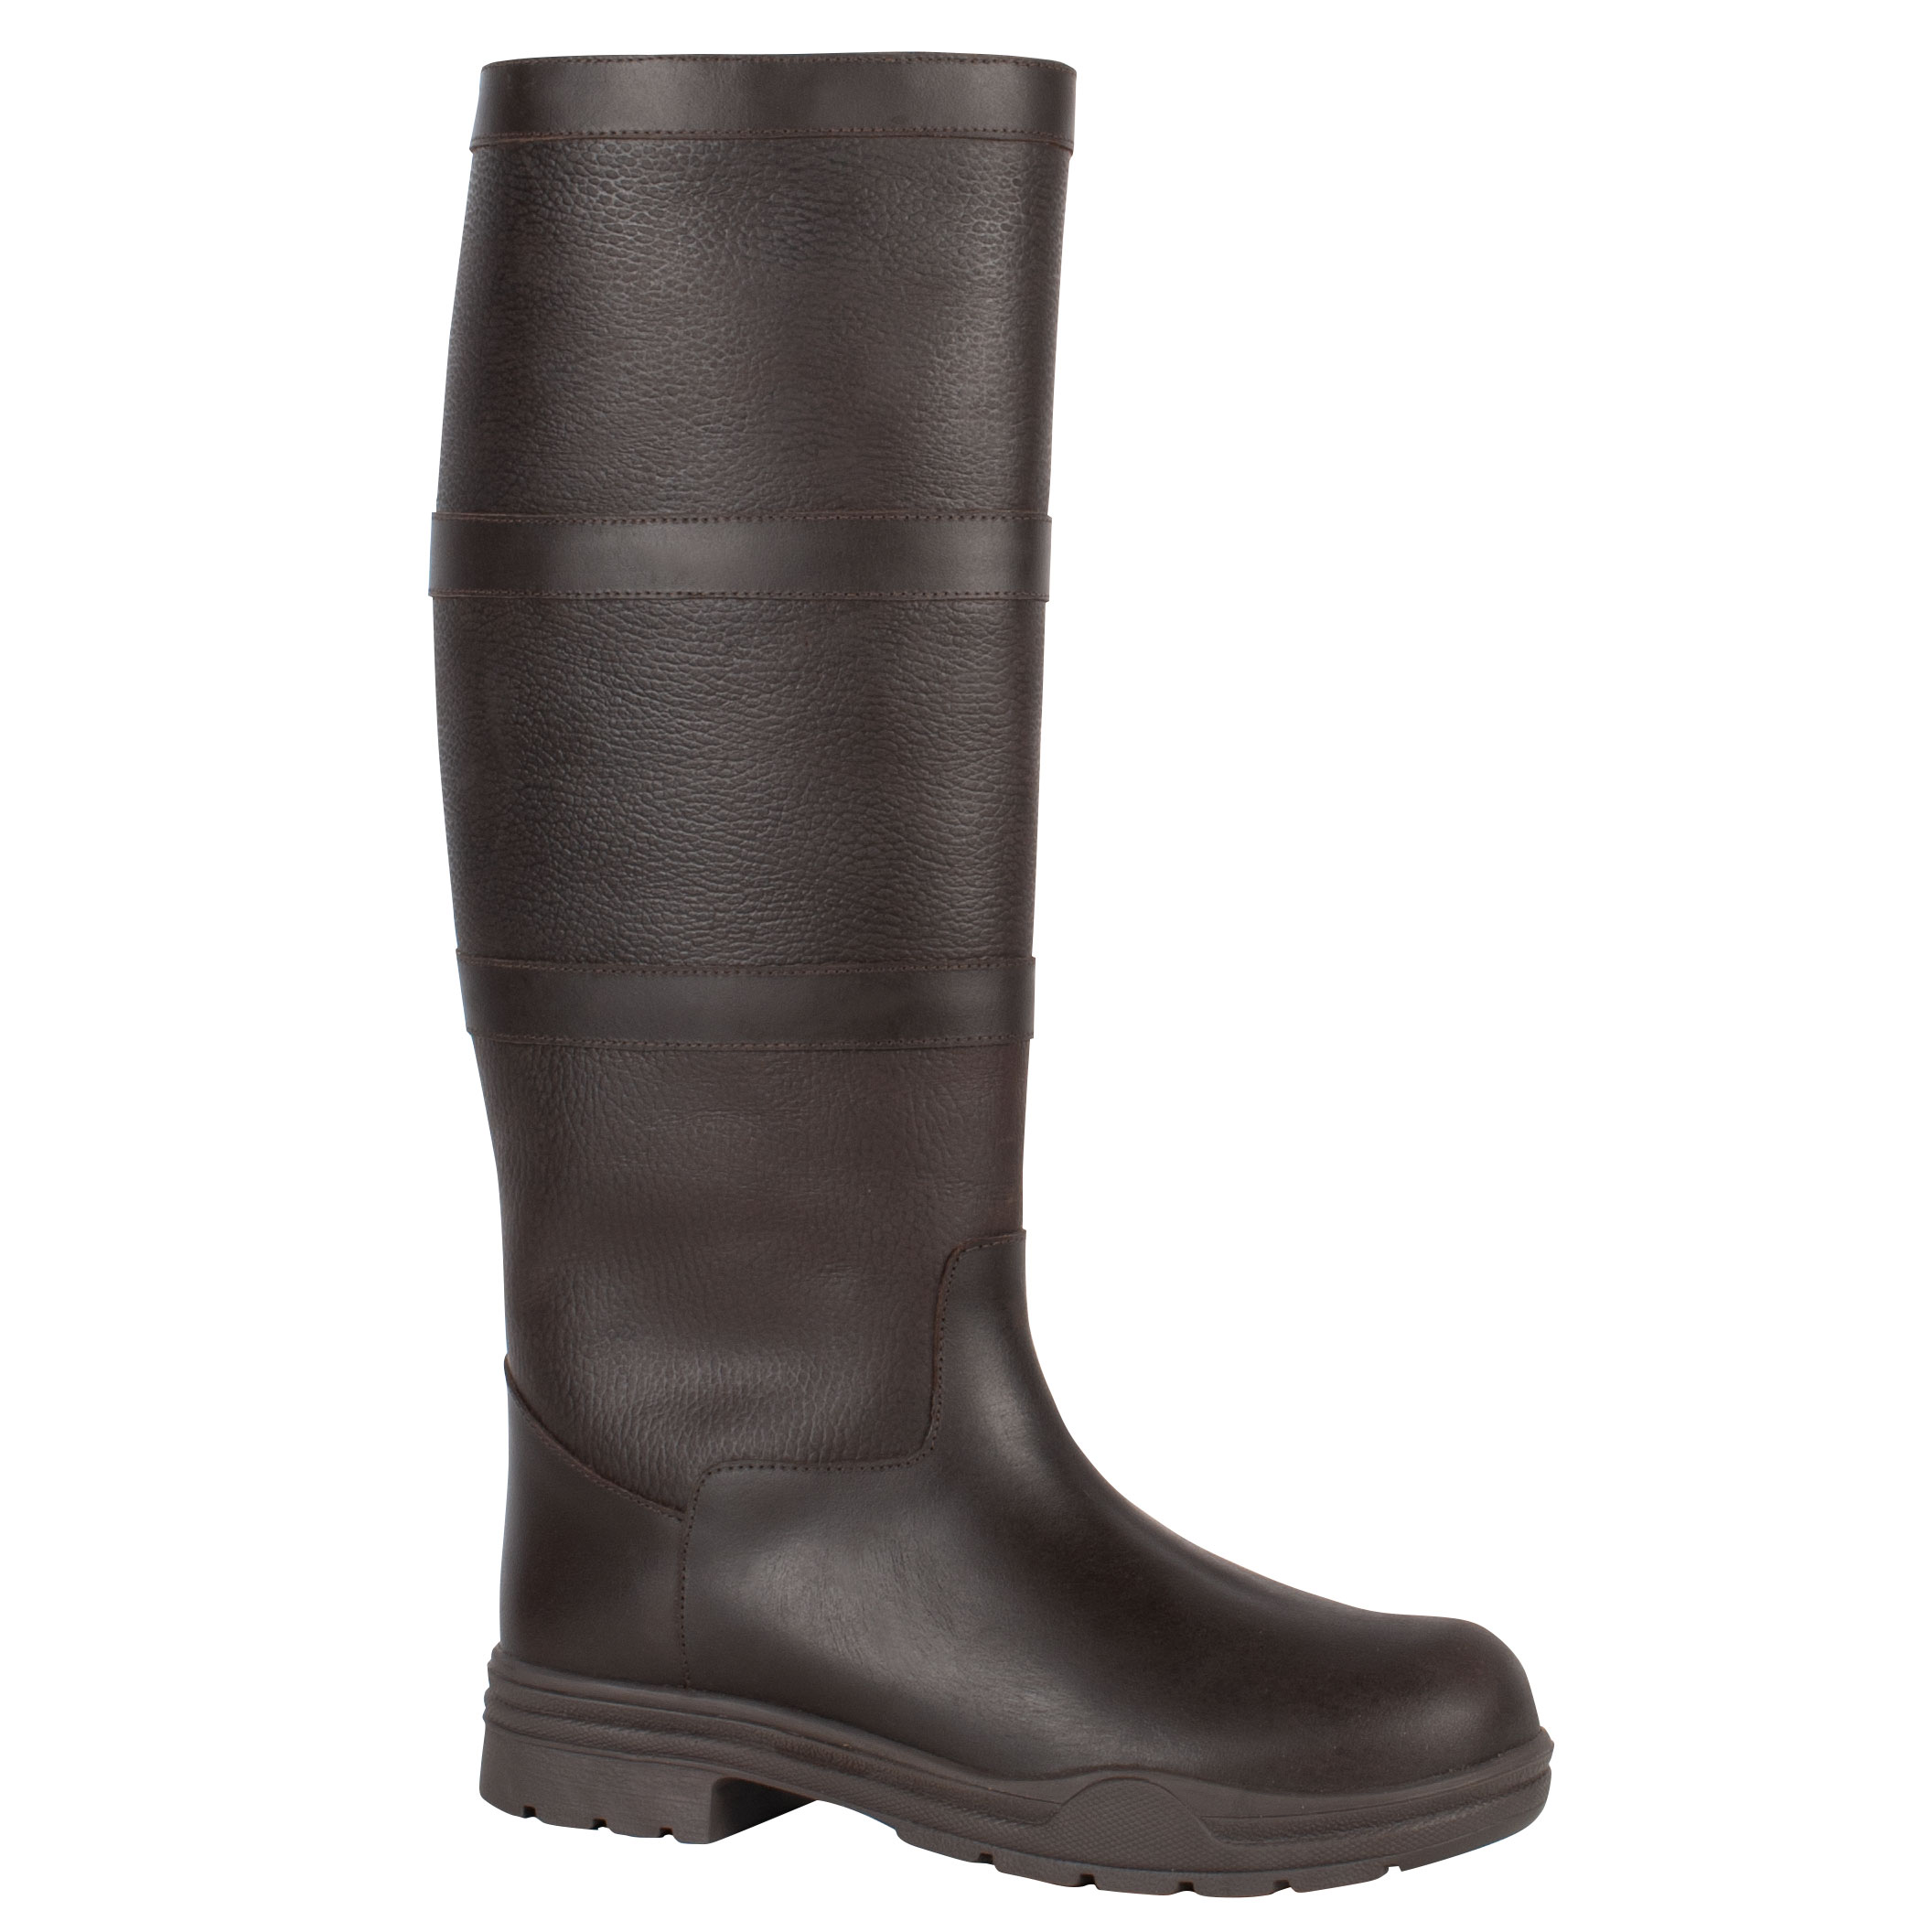 Mondoni Country Boots donkerbruin maat:37